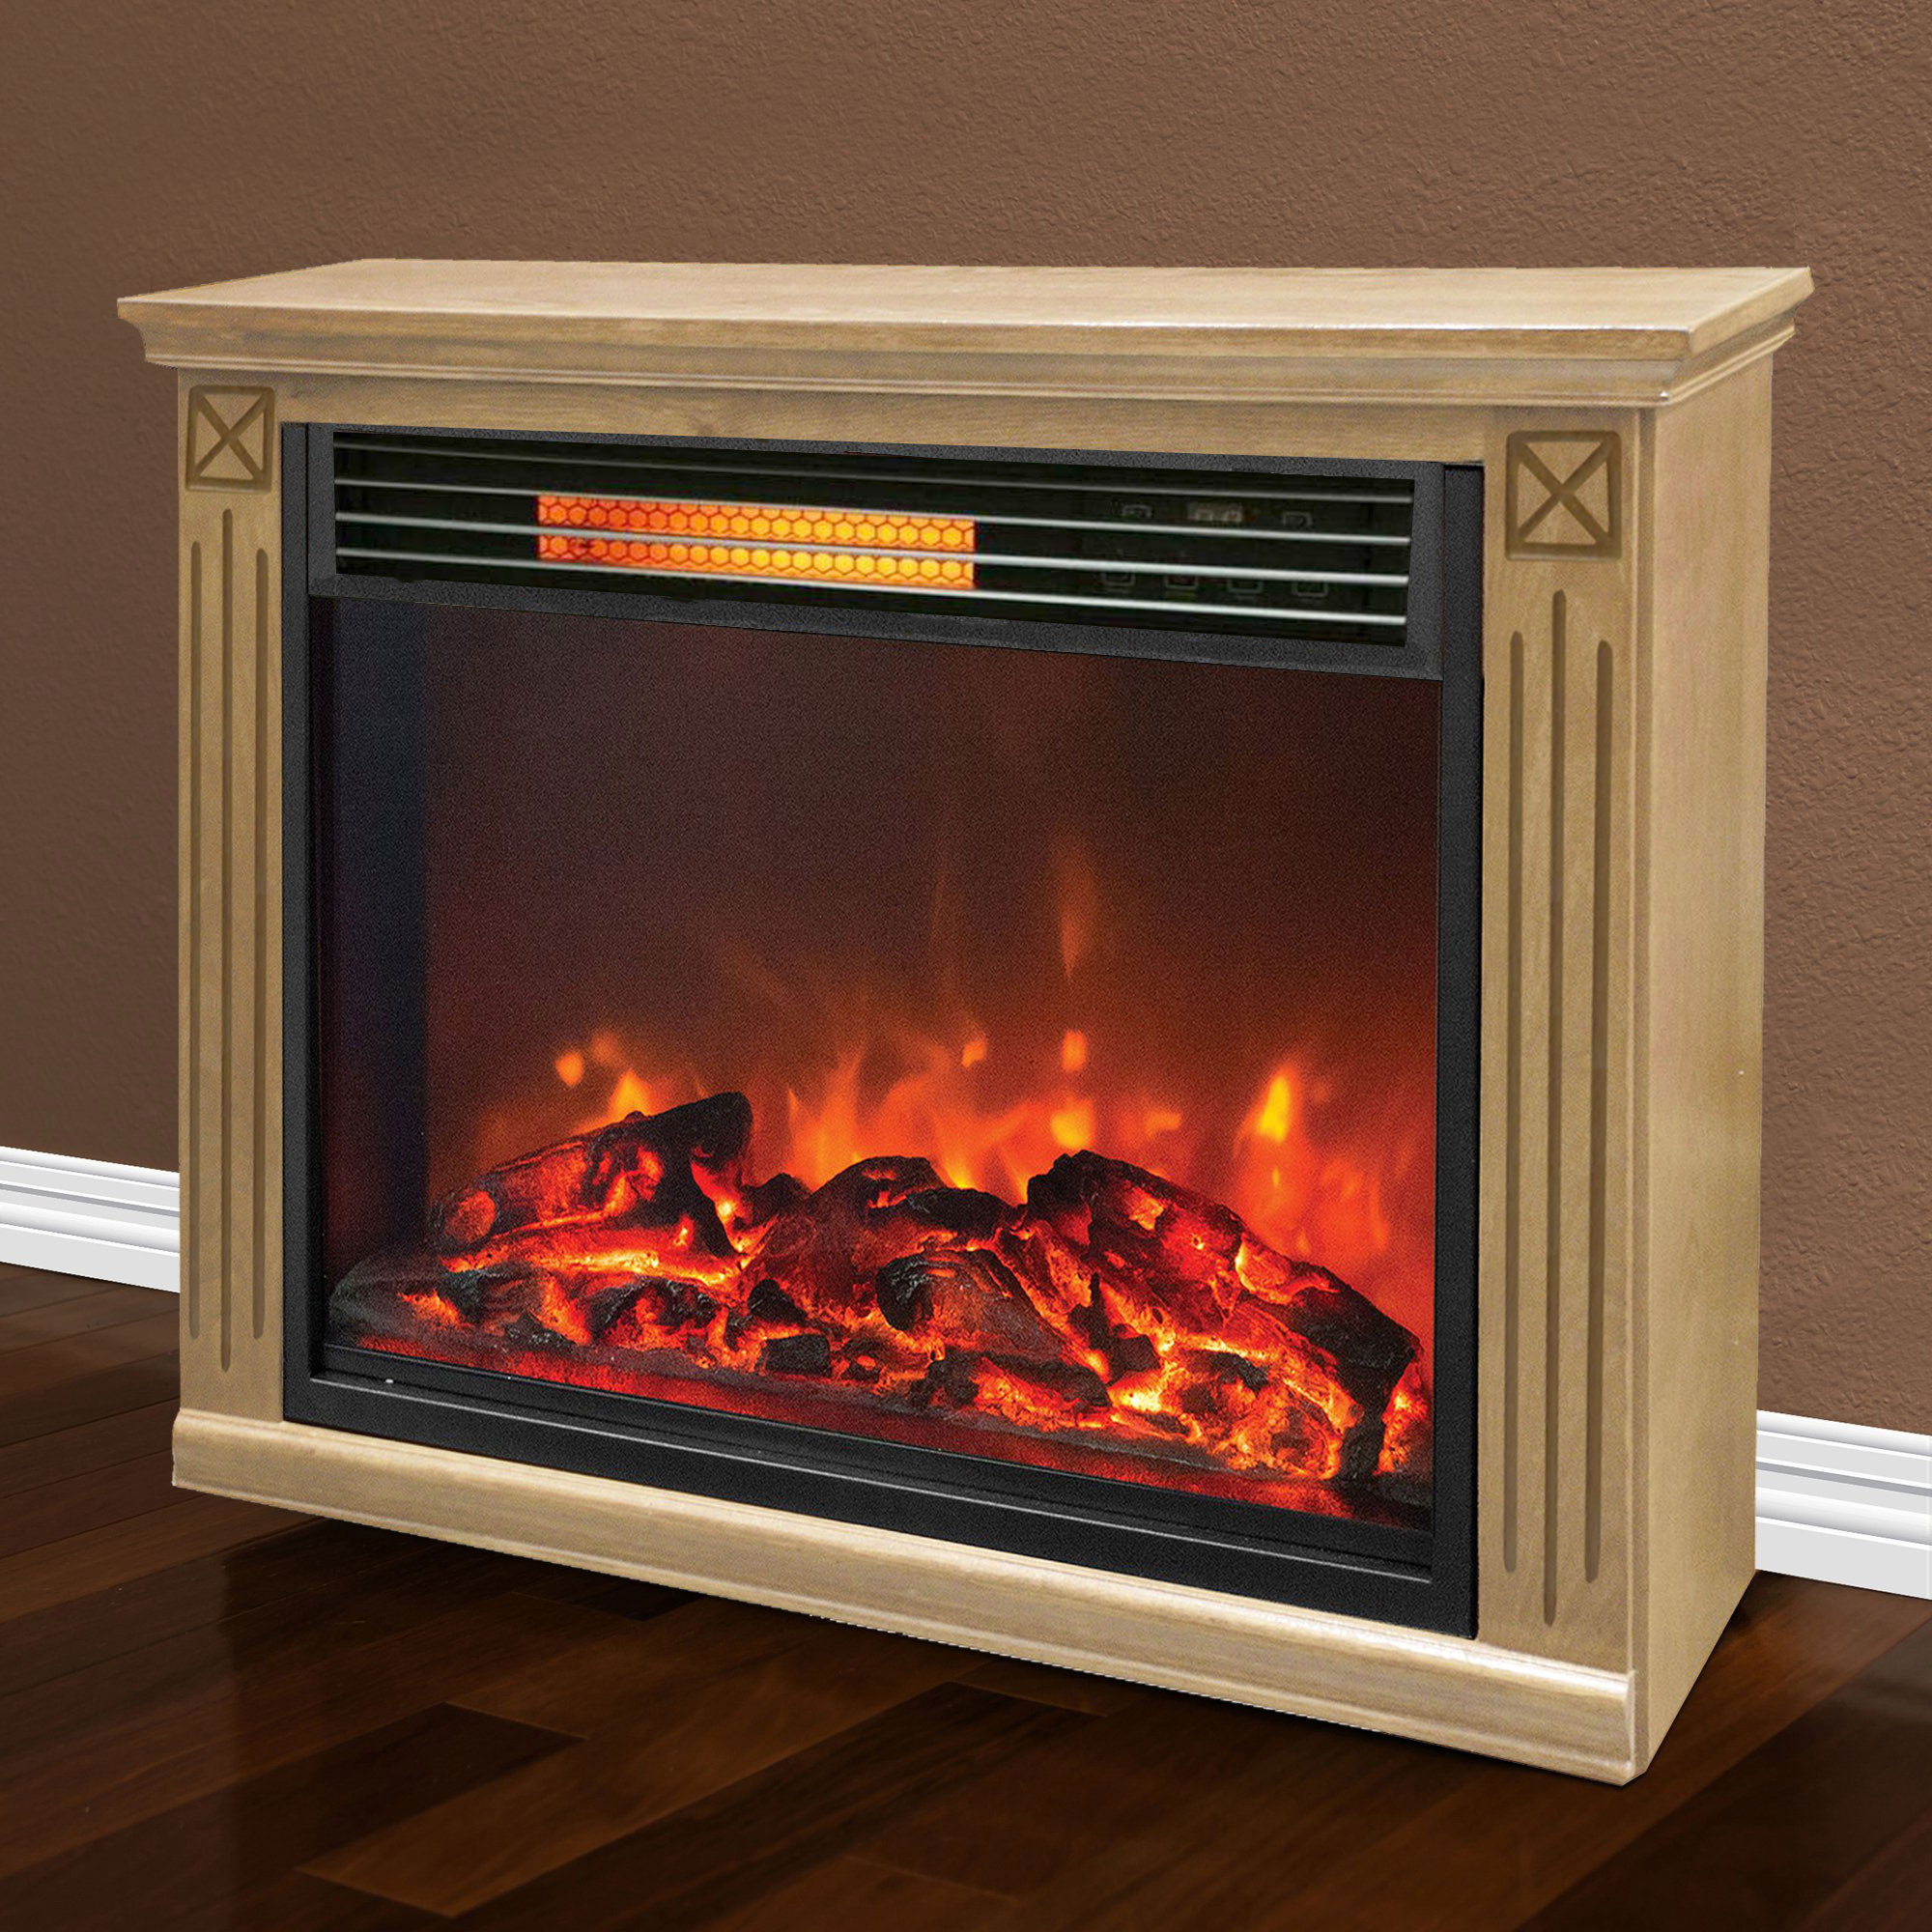 Best ideas about Infrared Fireplace Heater . Save or Pin Lifesmart Big Room Electric Infrared Quartz Fireplace Now.